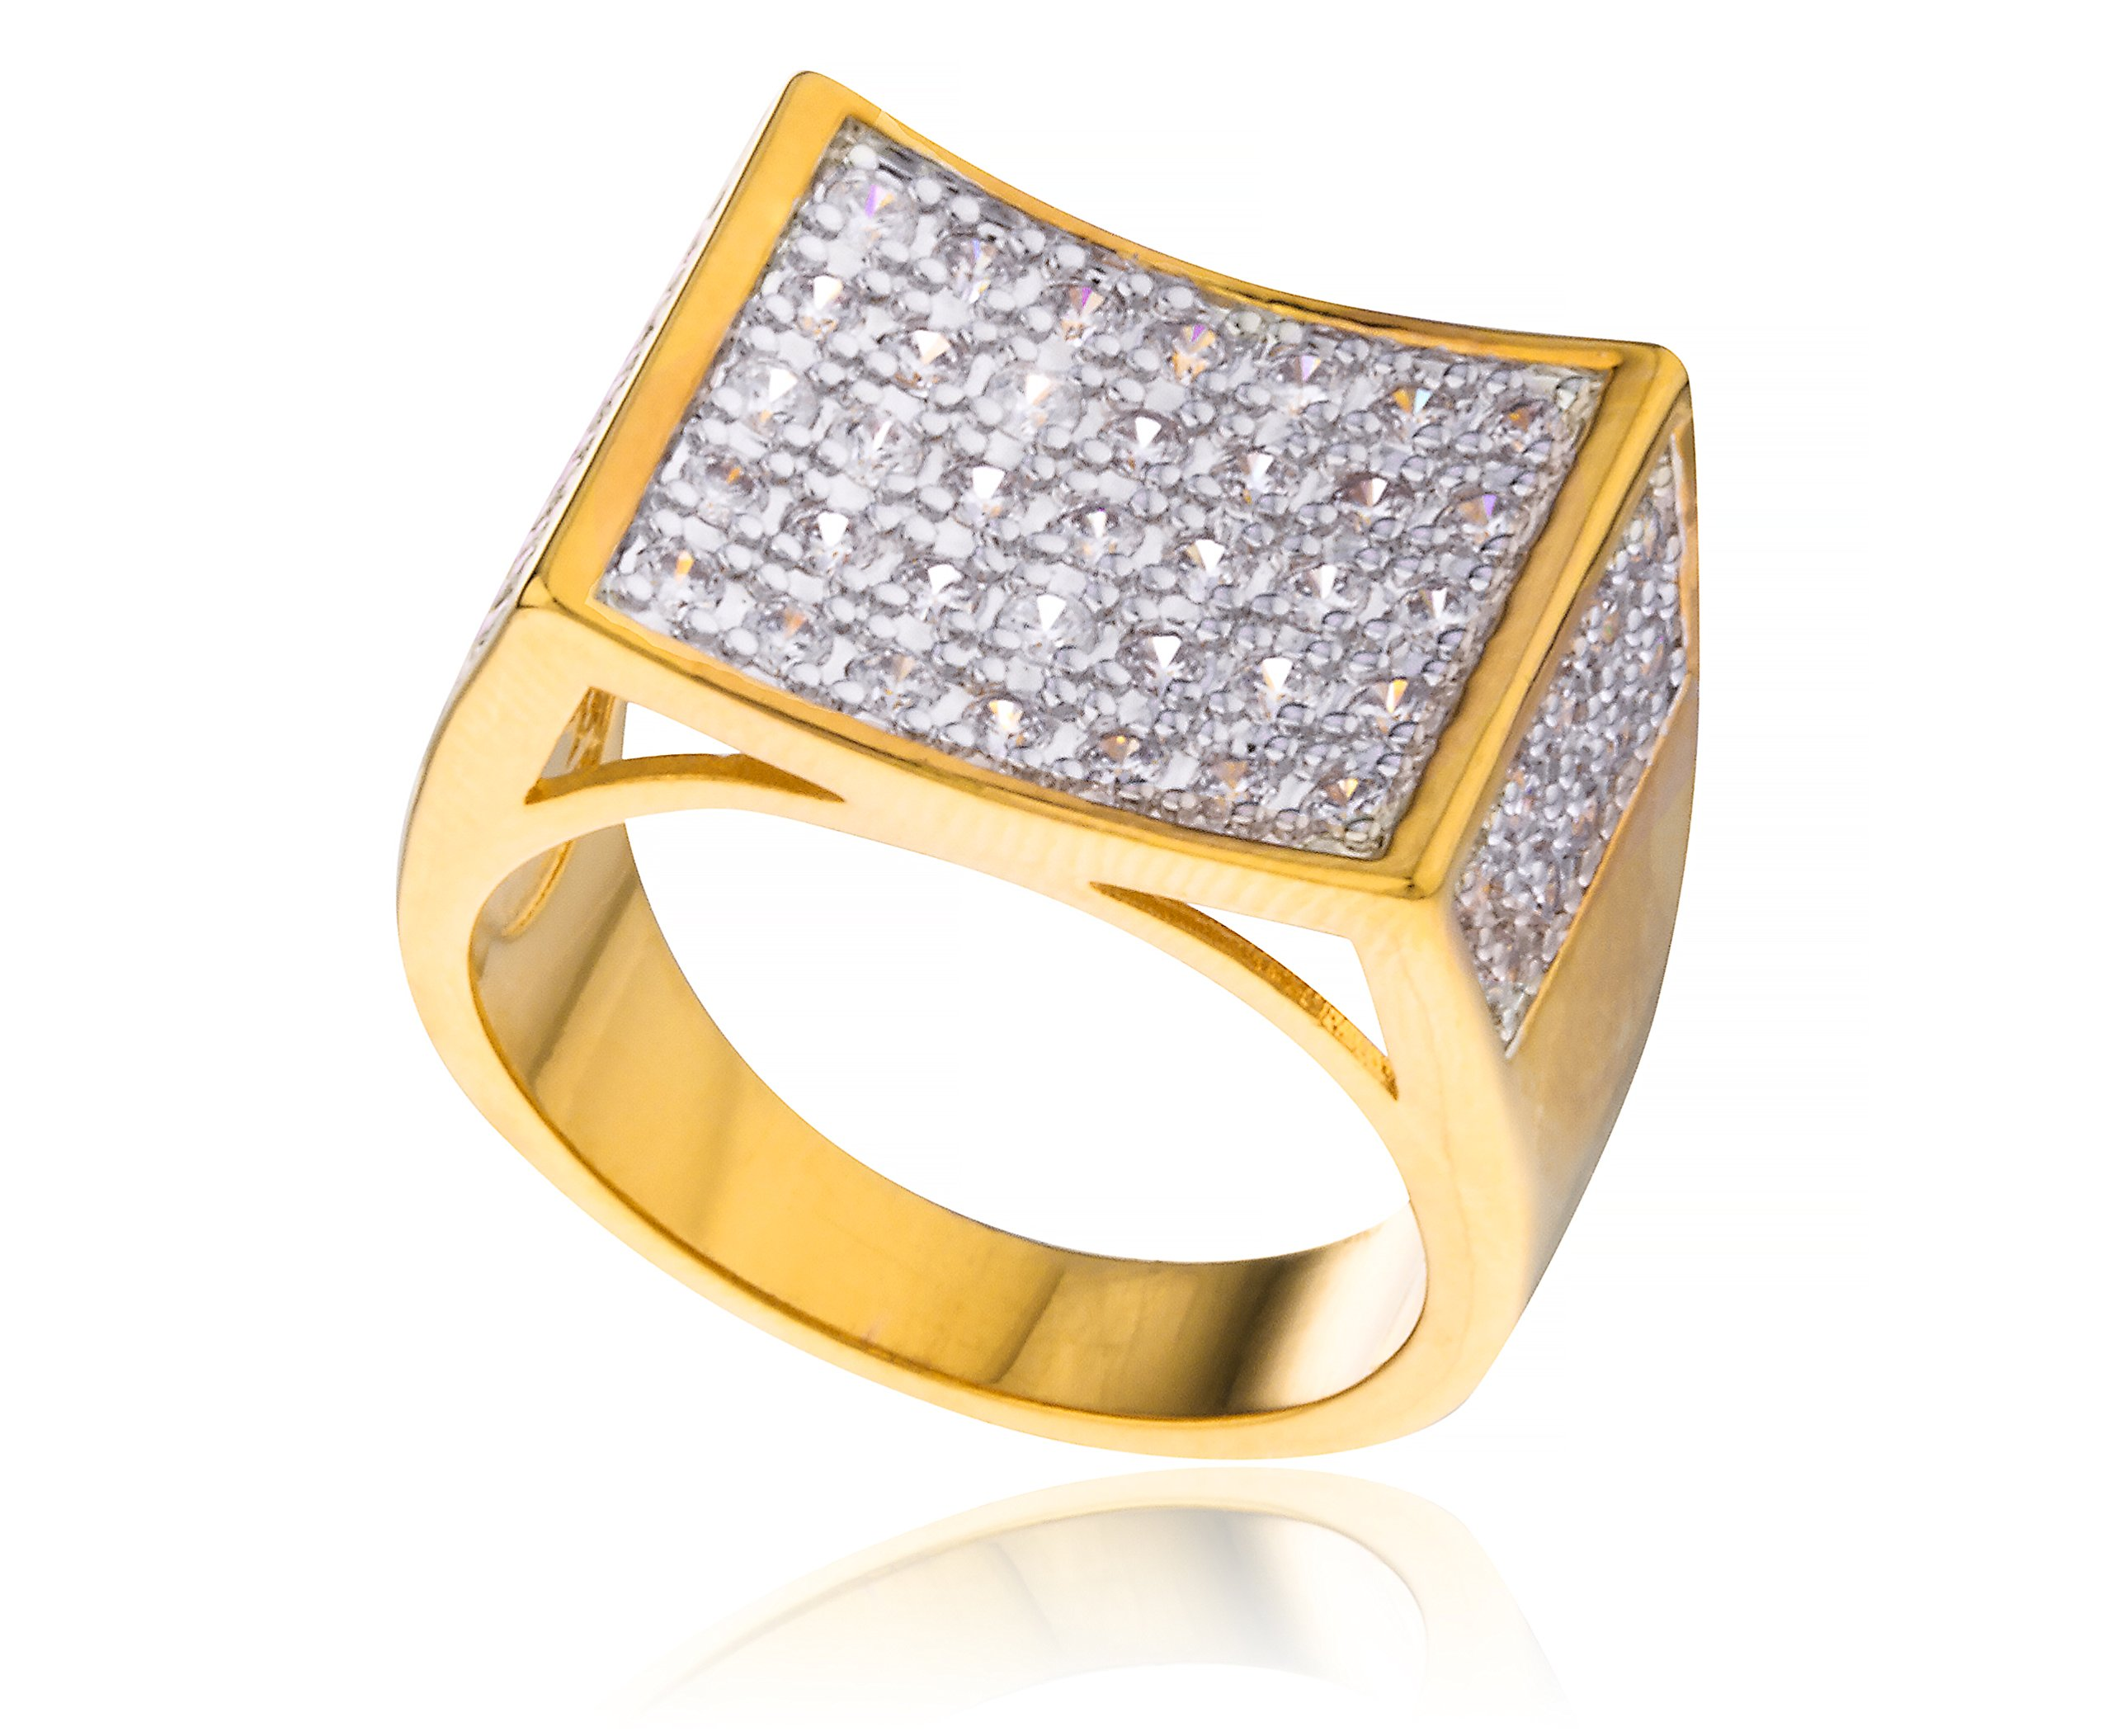 Men's Goldtone Cz Curved Rectangle Ring Sizes 10-11 (10)